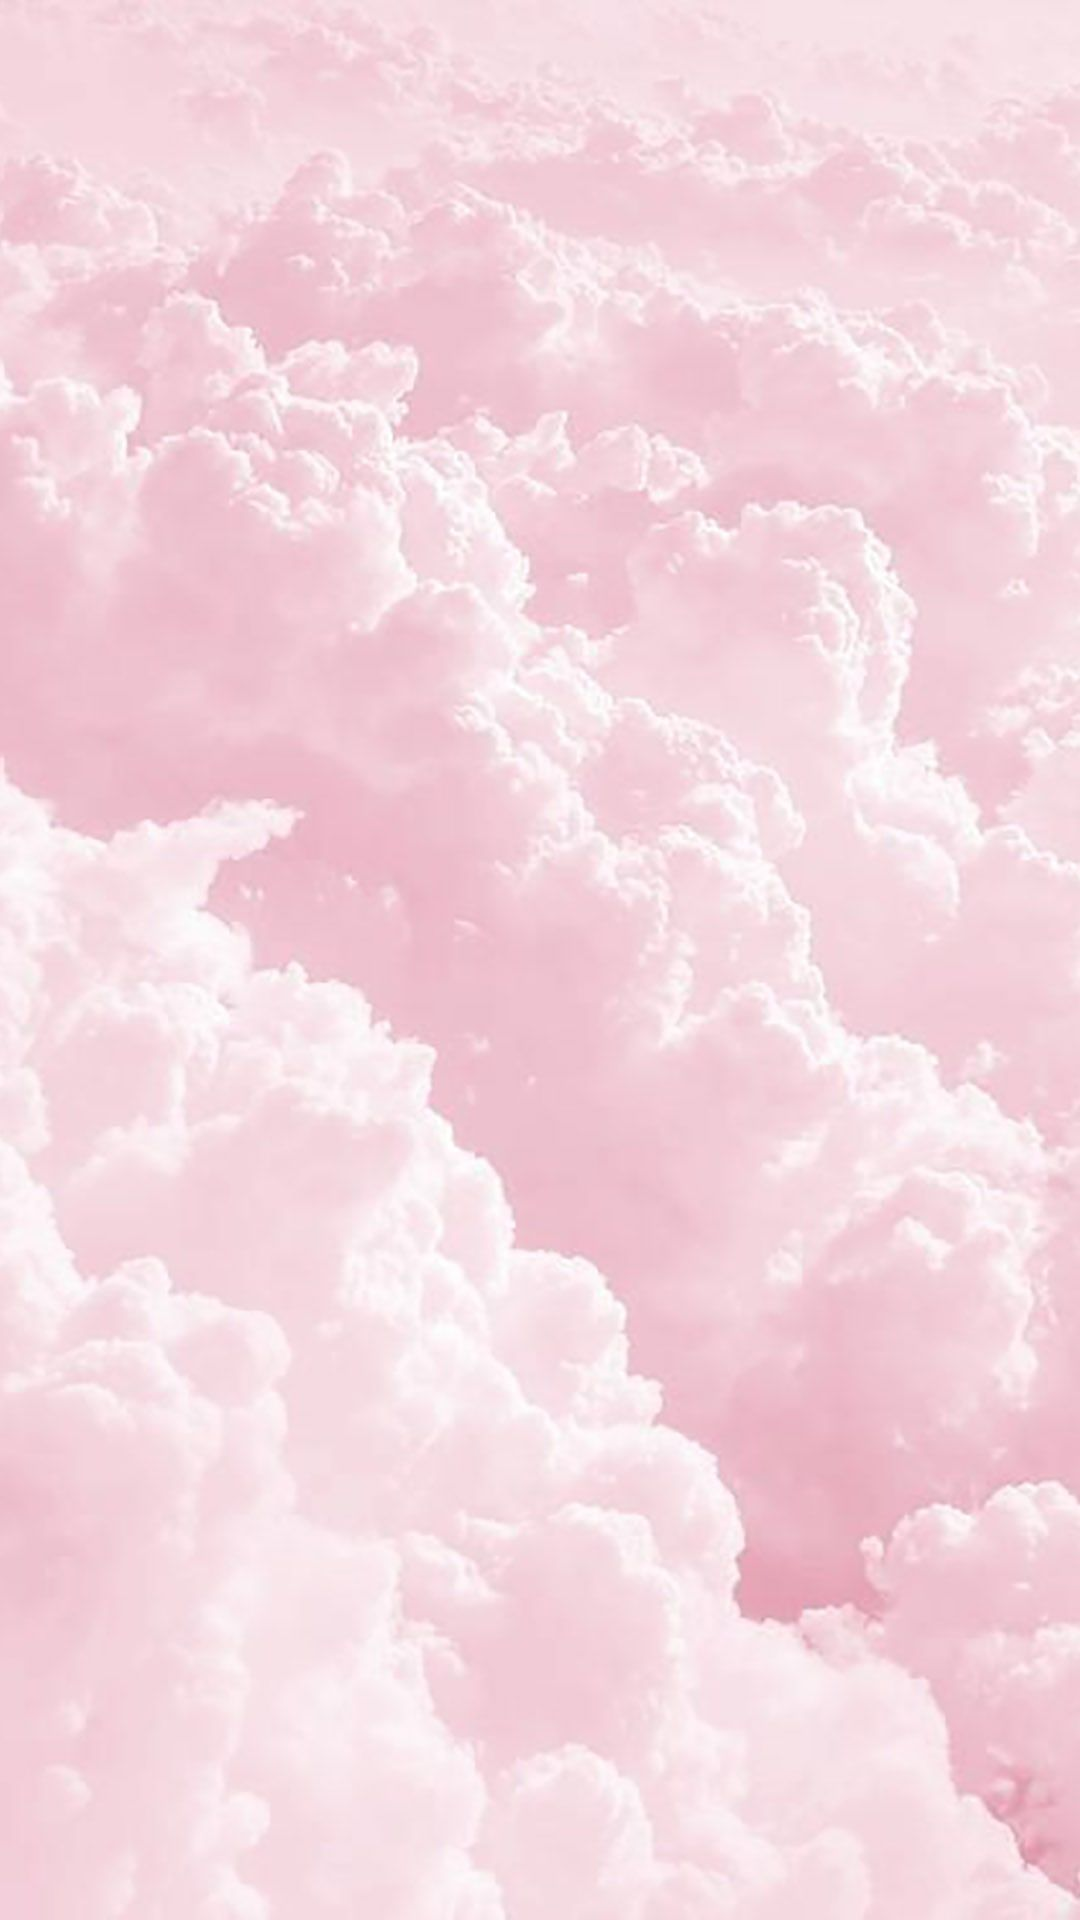 Pastel Pink Brick Picture In 2020 Pink Clouds Wallpaper Pastel Pink Aesthetic Pastel Pink Wallpaper